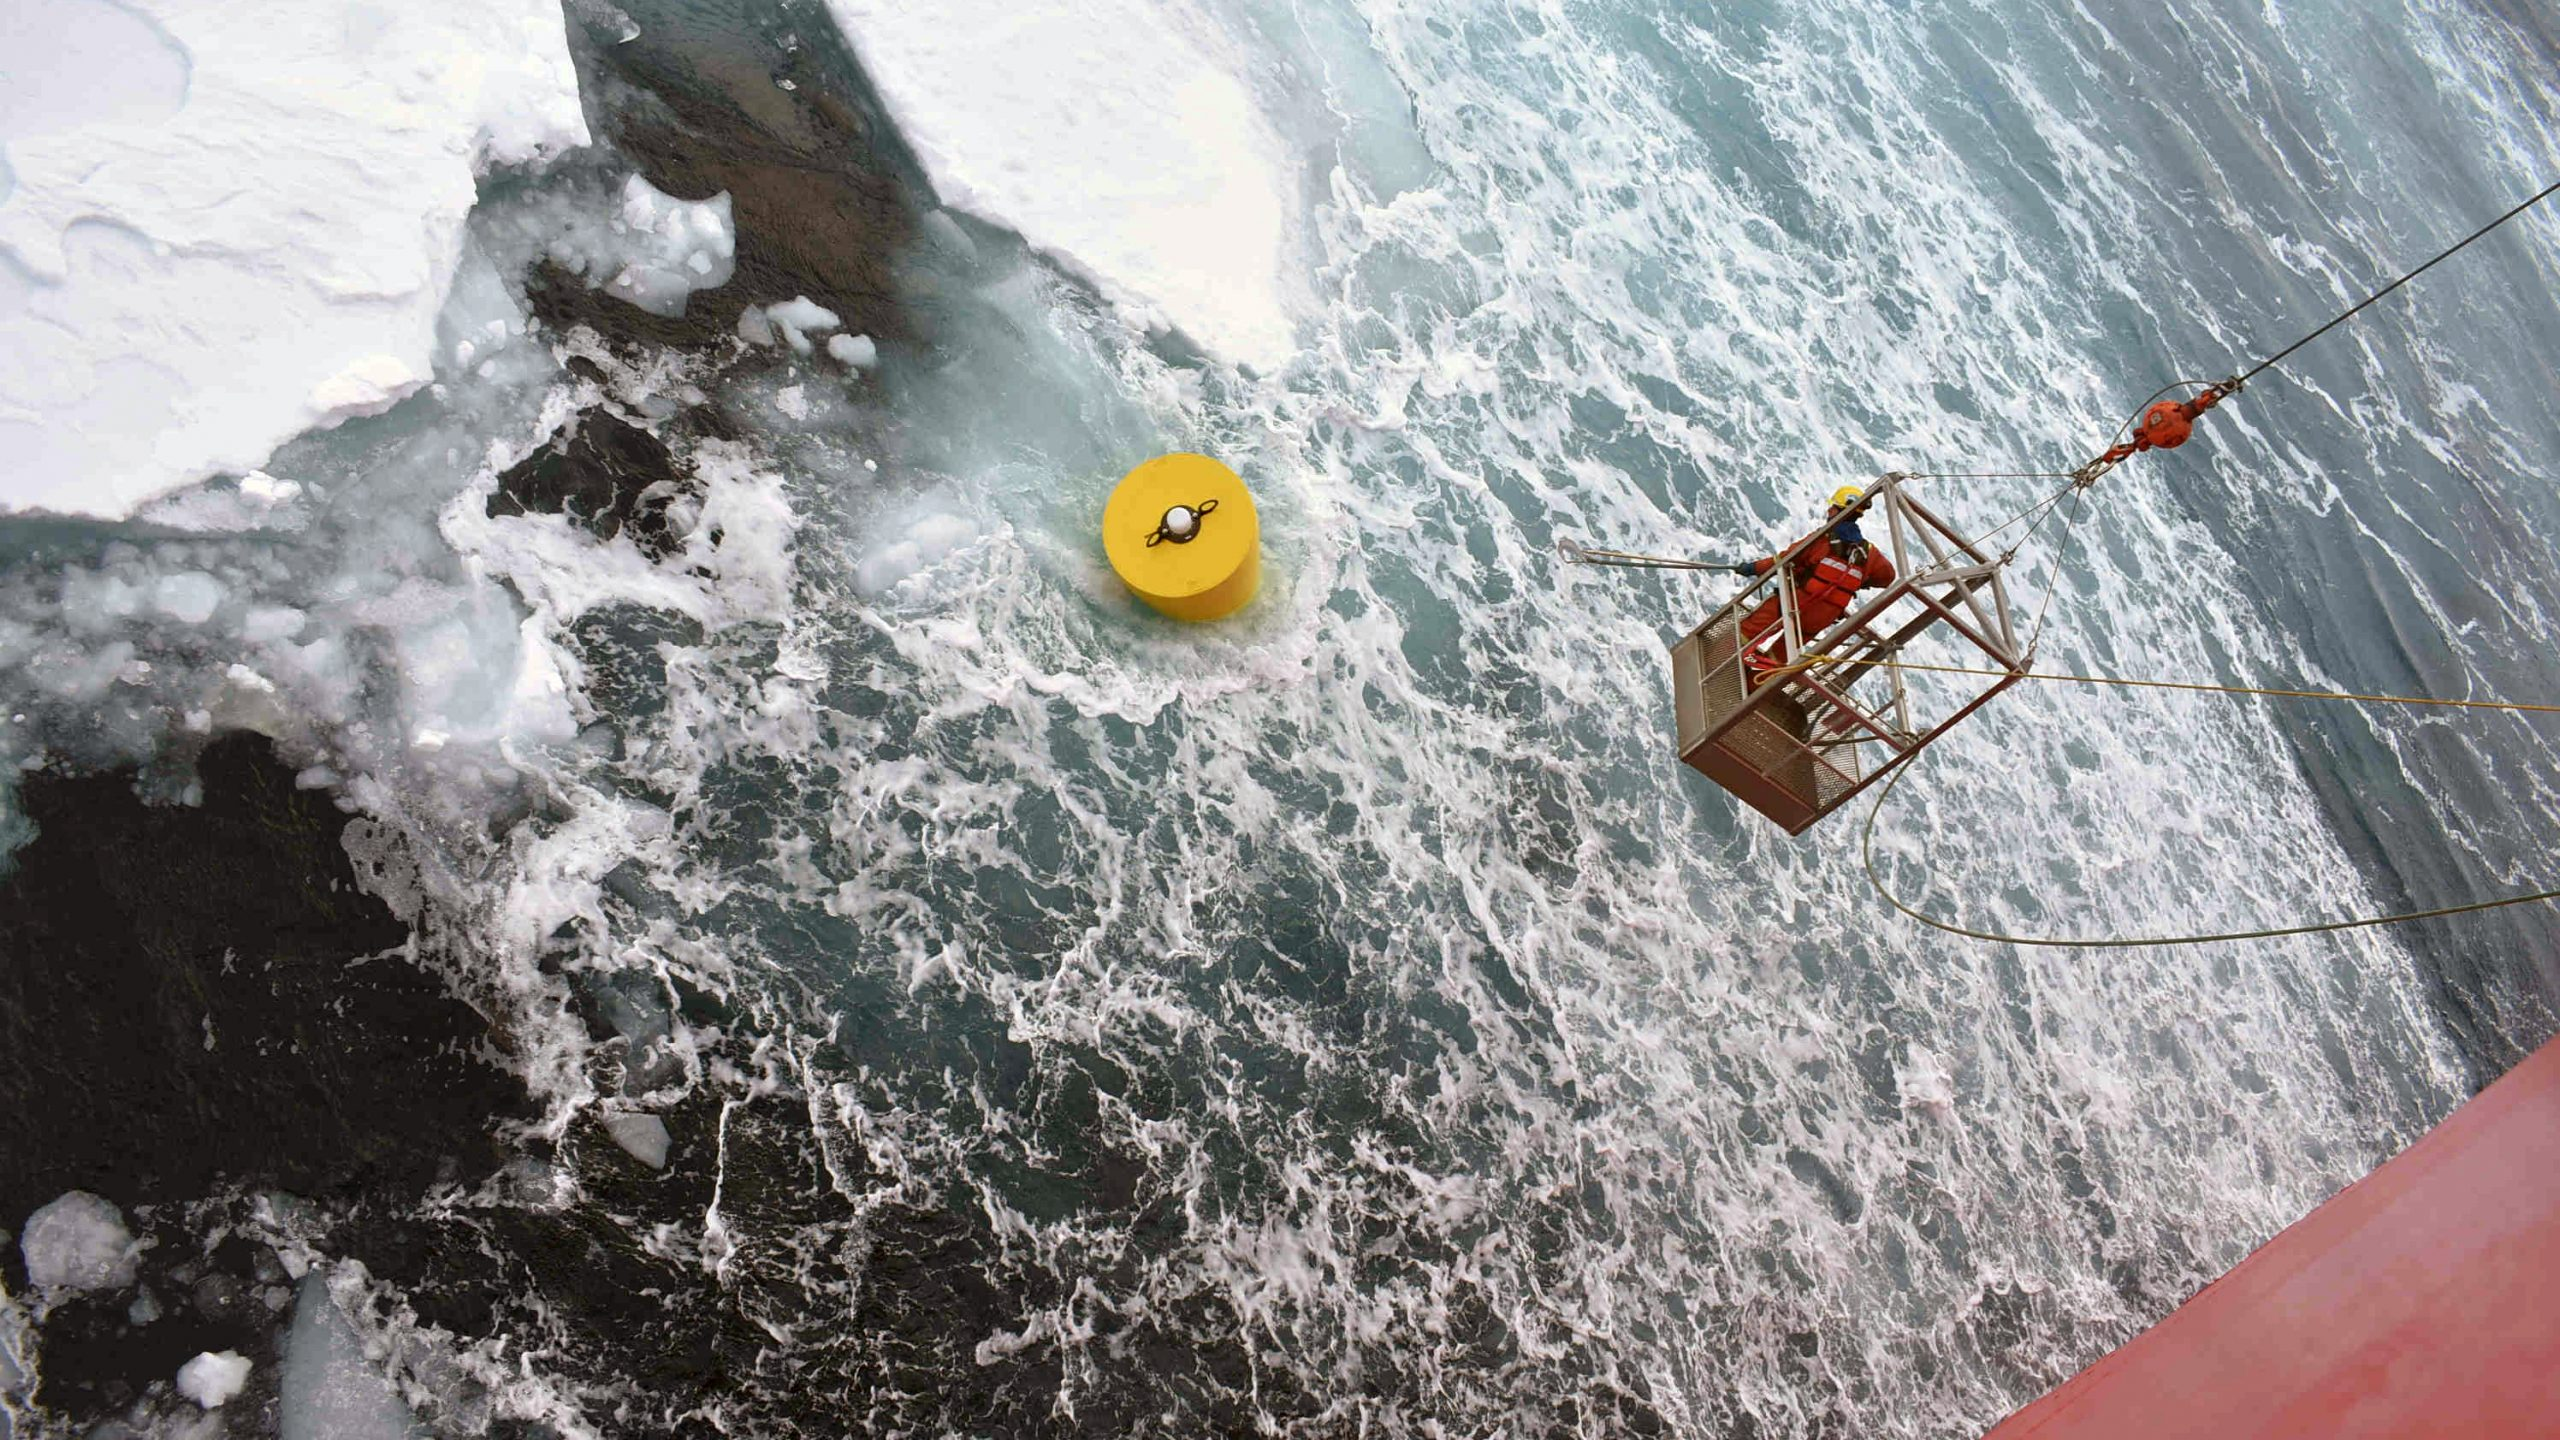 The top float started moving very quickly once it was dislodged from the sea ice before it was hooked by Roger Carew. (Photo: Isabela Le Bras.)